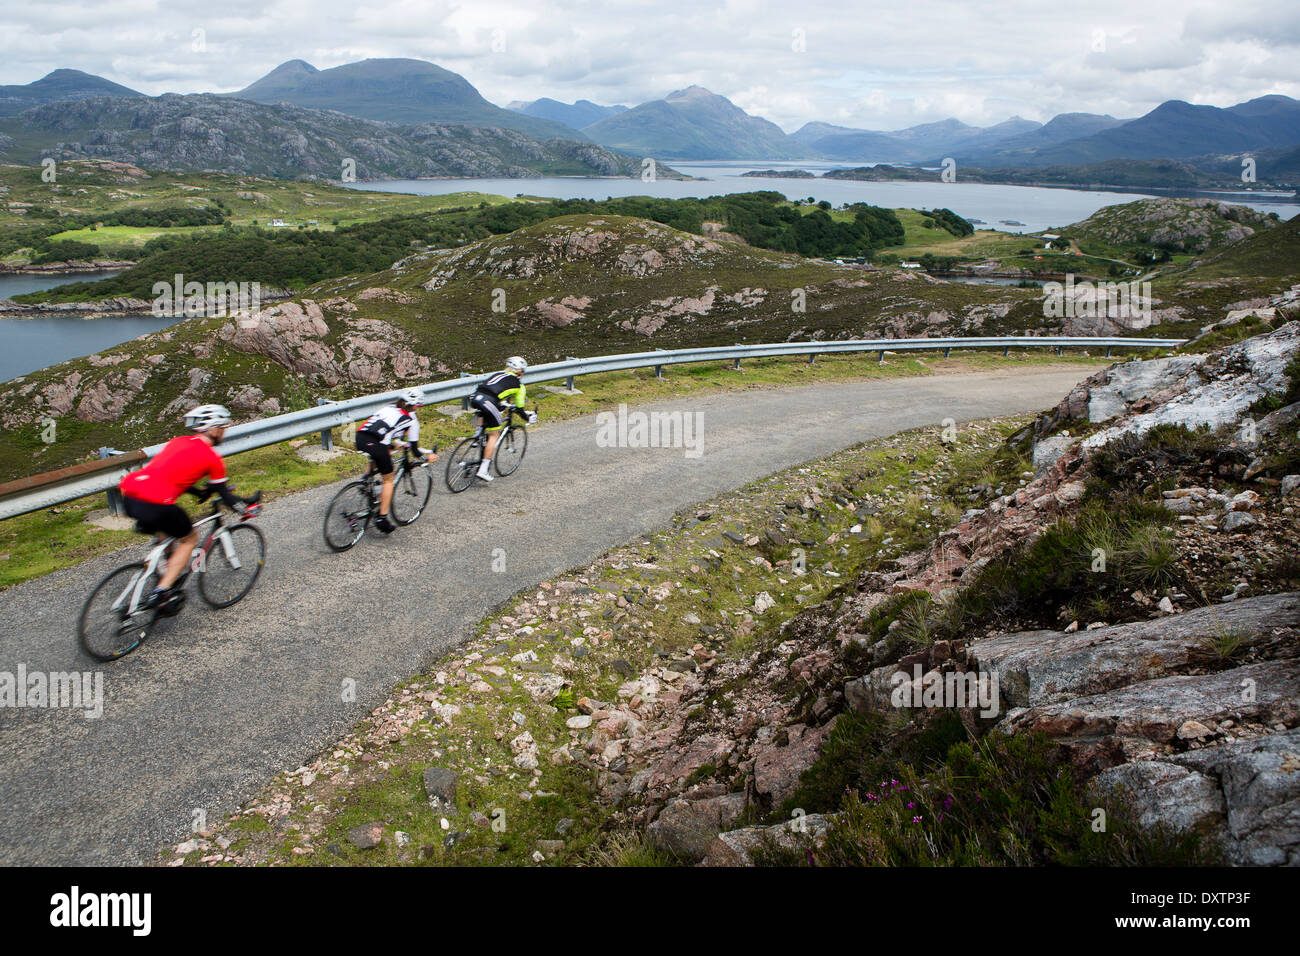 A cyclist takes on Britain's longest road climb in Lochcarron, Scotland - Stock Image